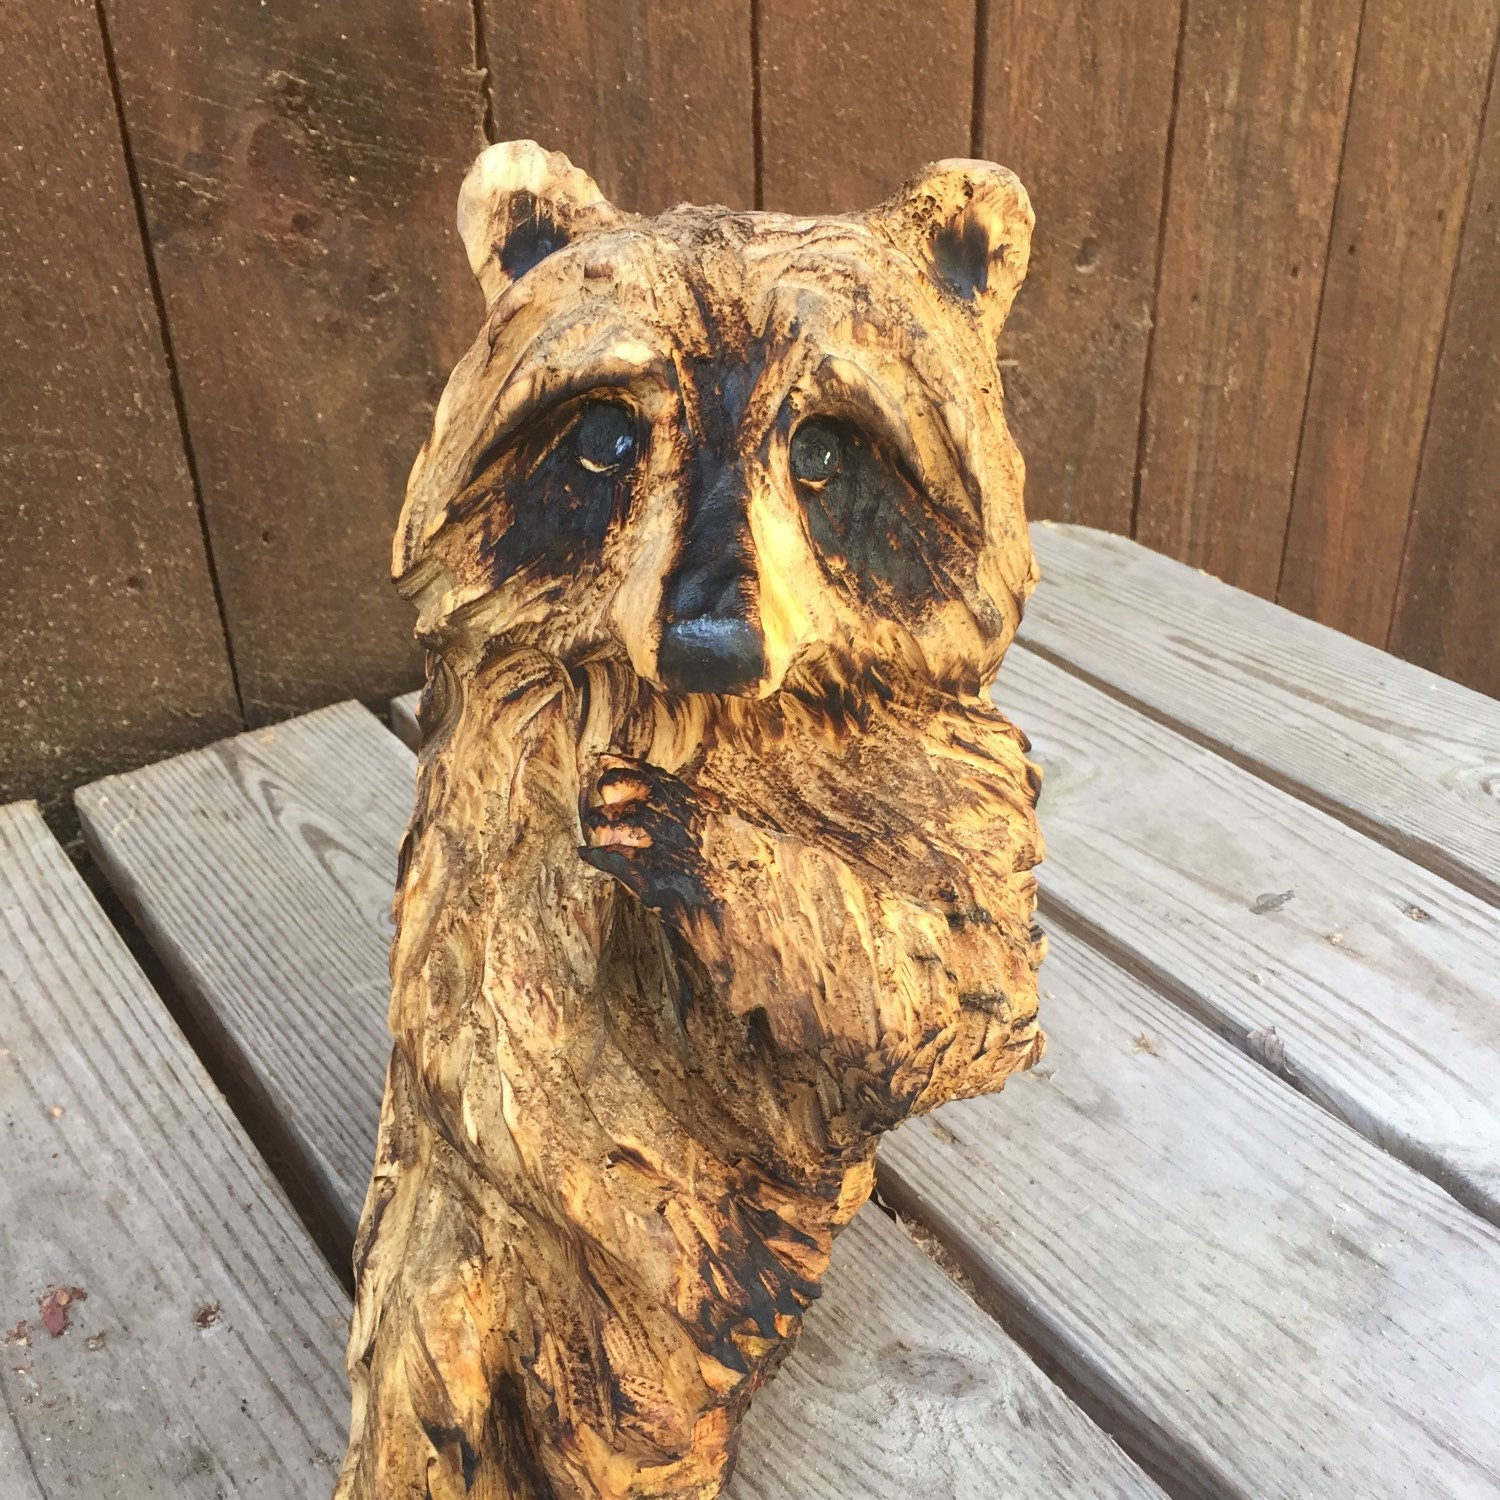 Raccoon chainsaw carving wood carved sculpture